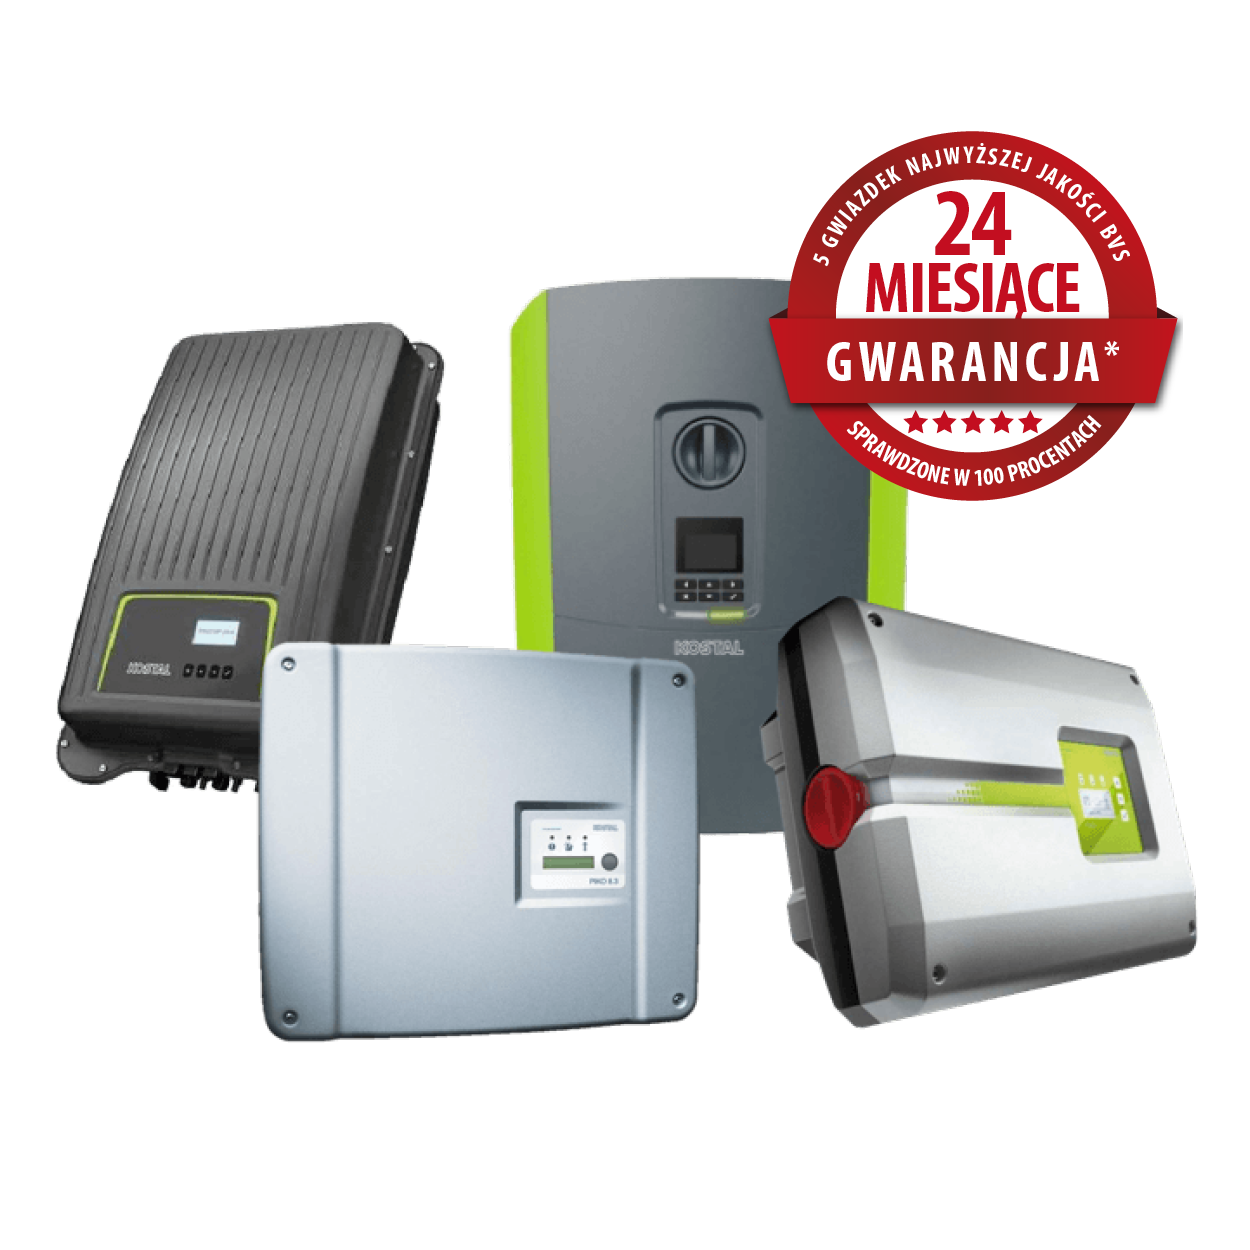 You got problems with your KOSTAL inverter? Repair and services for KOSTAL inverters